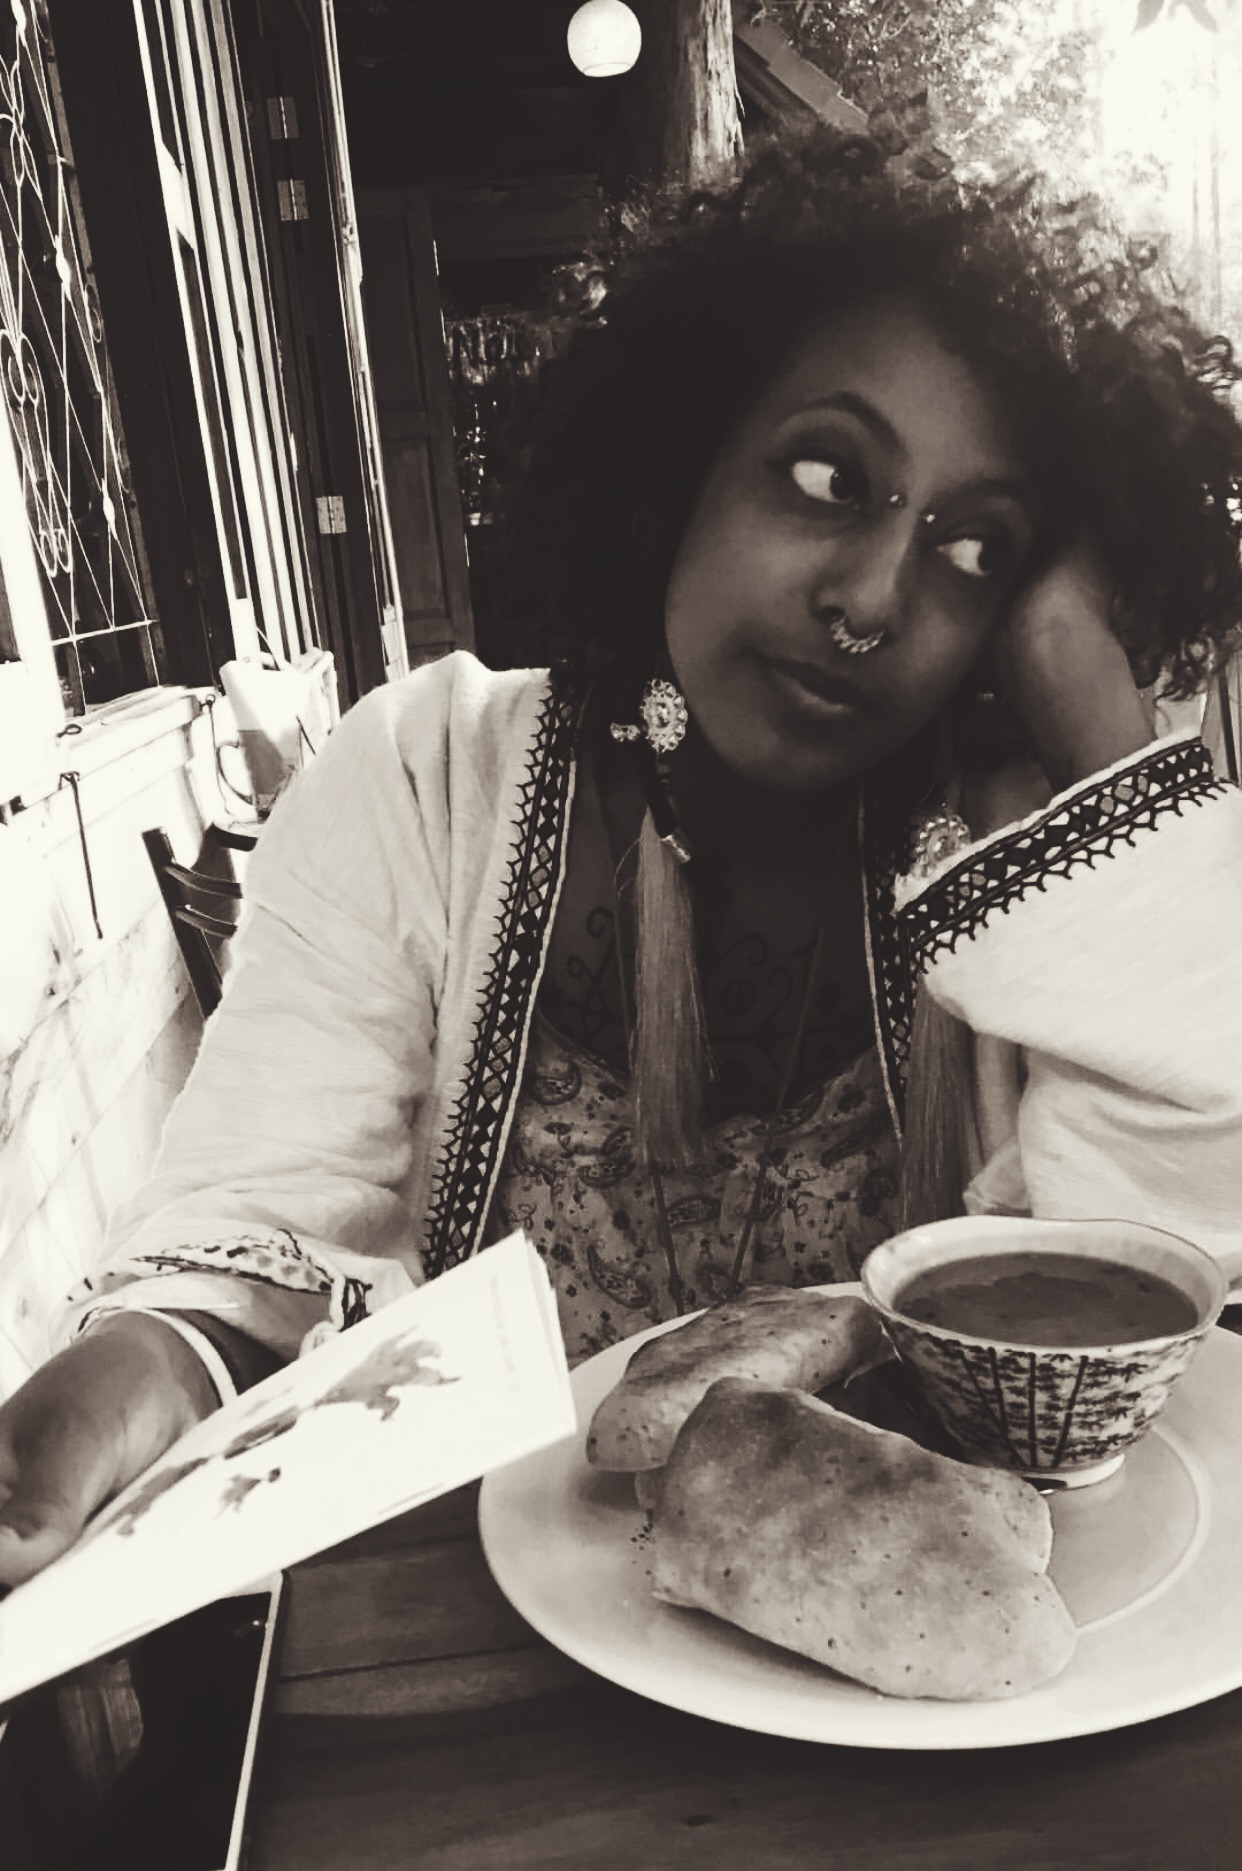 Gabrielle Tesfaye in Thailand with her A6 passport notebook (a gift from VGB diarist Giselle.)